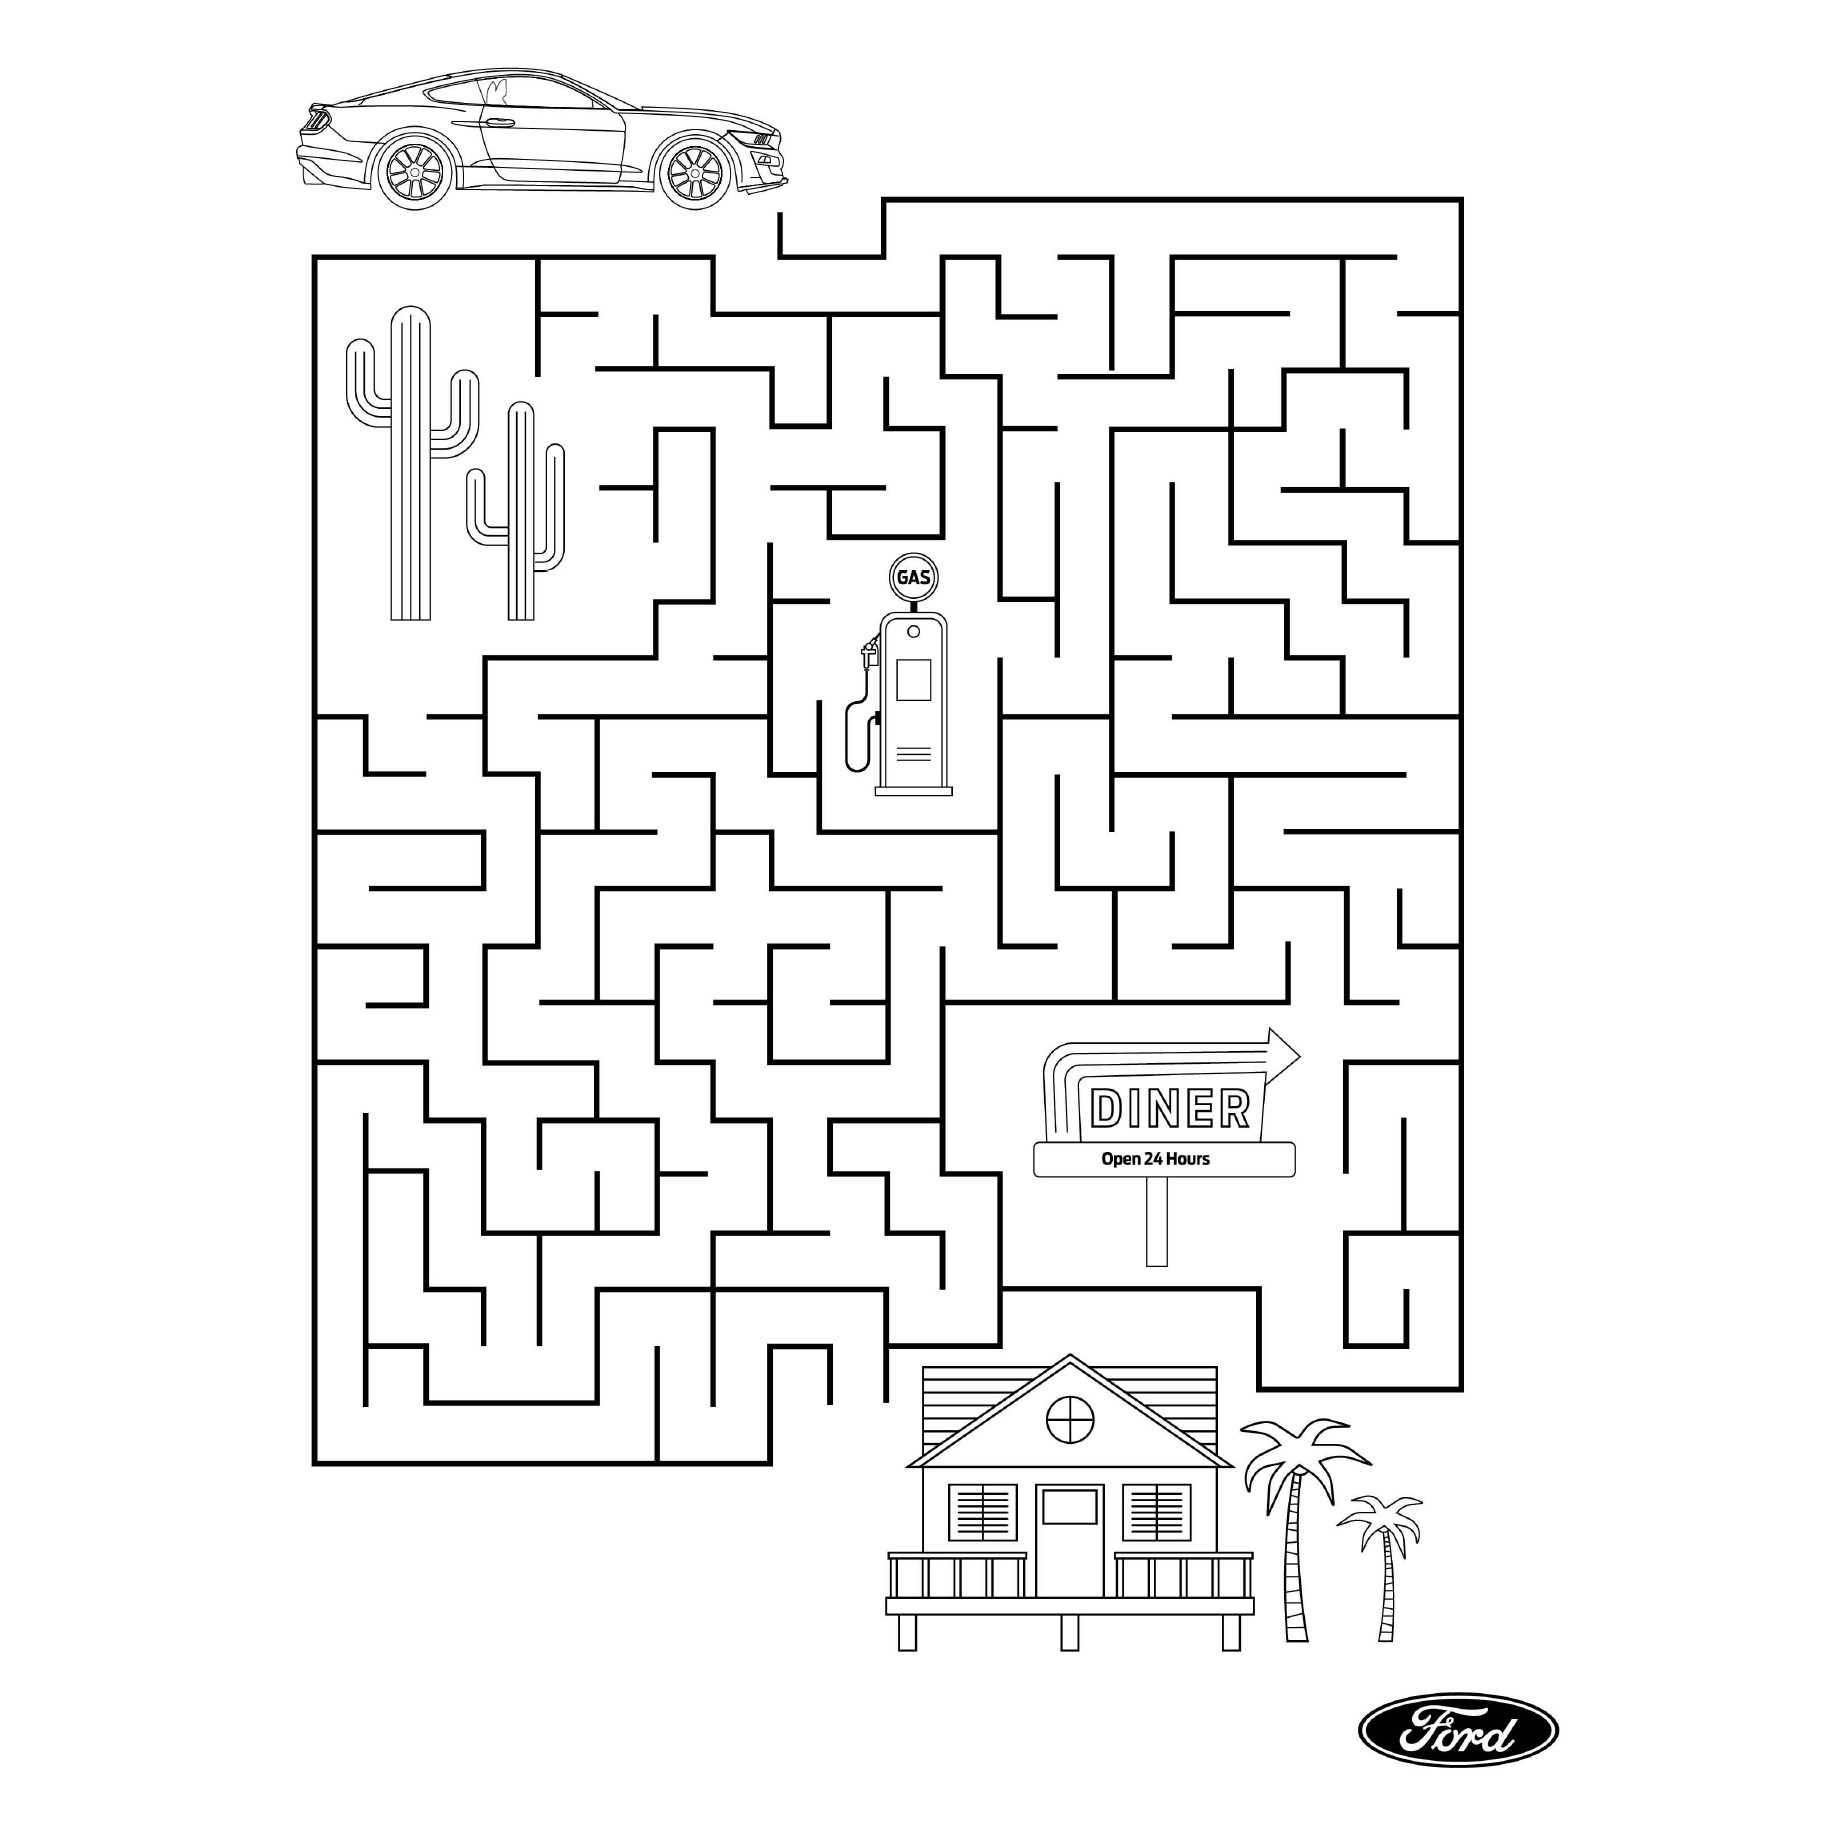 Ford Stay Home maze puzzle special Mustang edition